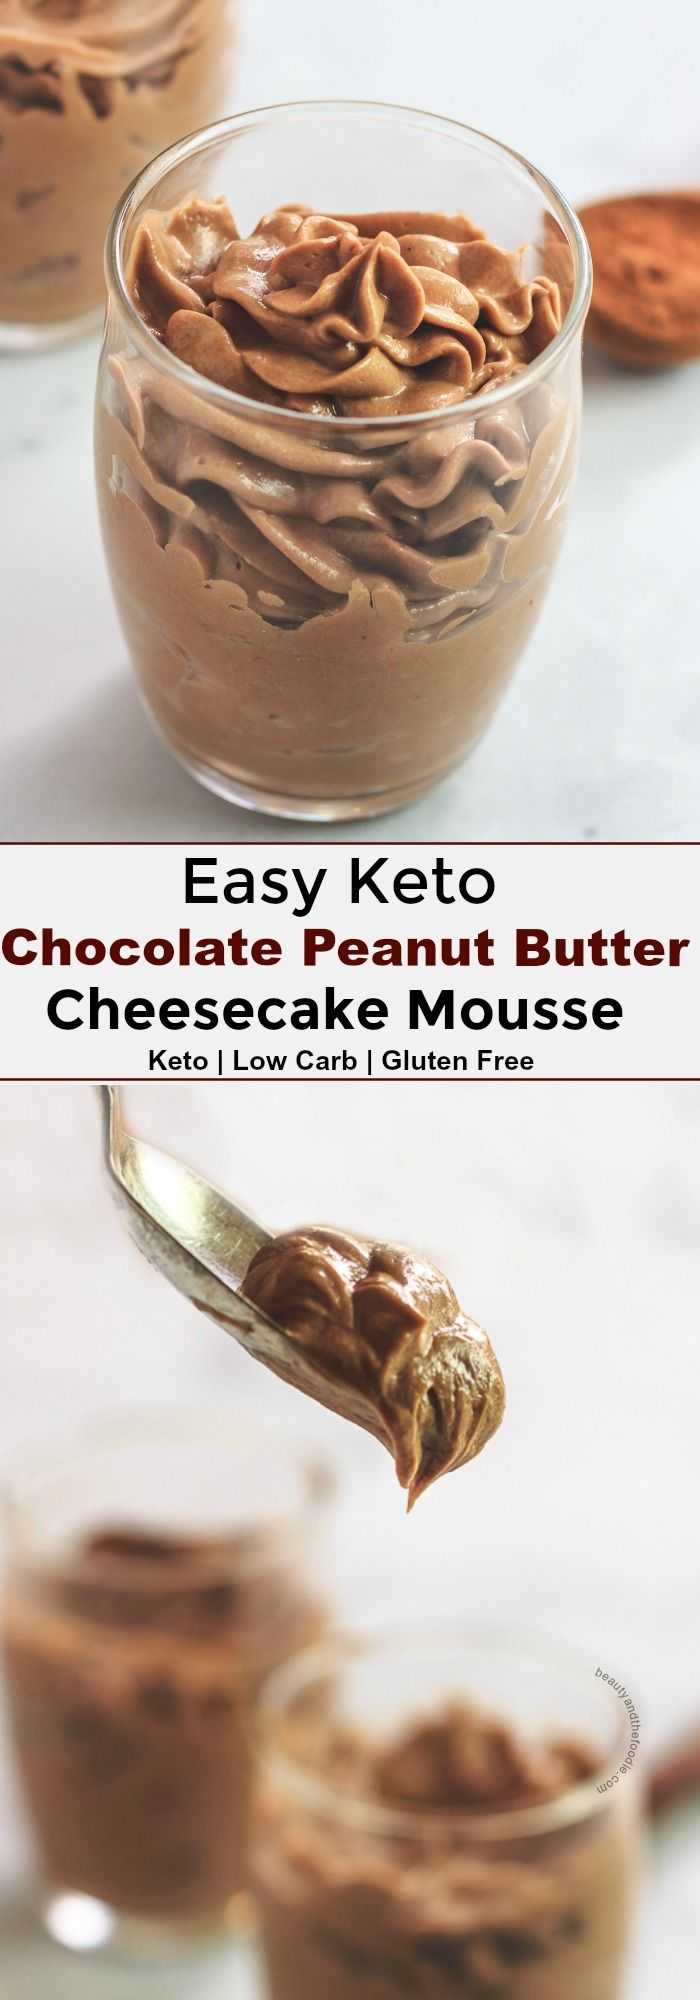 Keto Chocolate Peanut Butter Cheesecake Mousse   B…